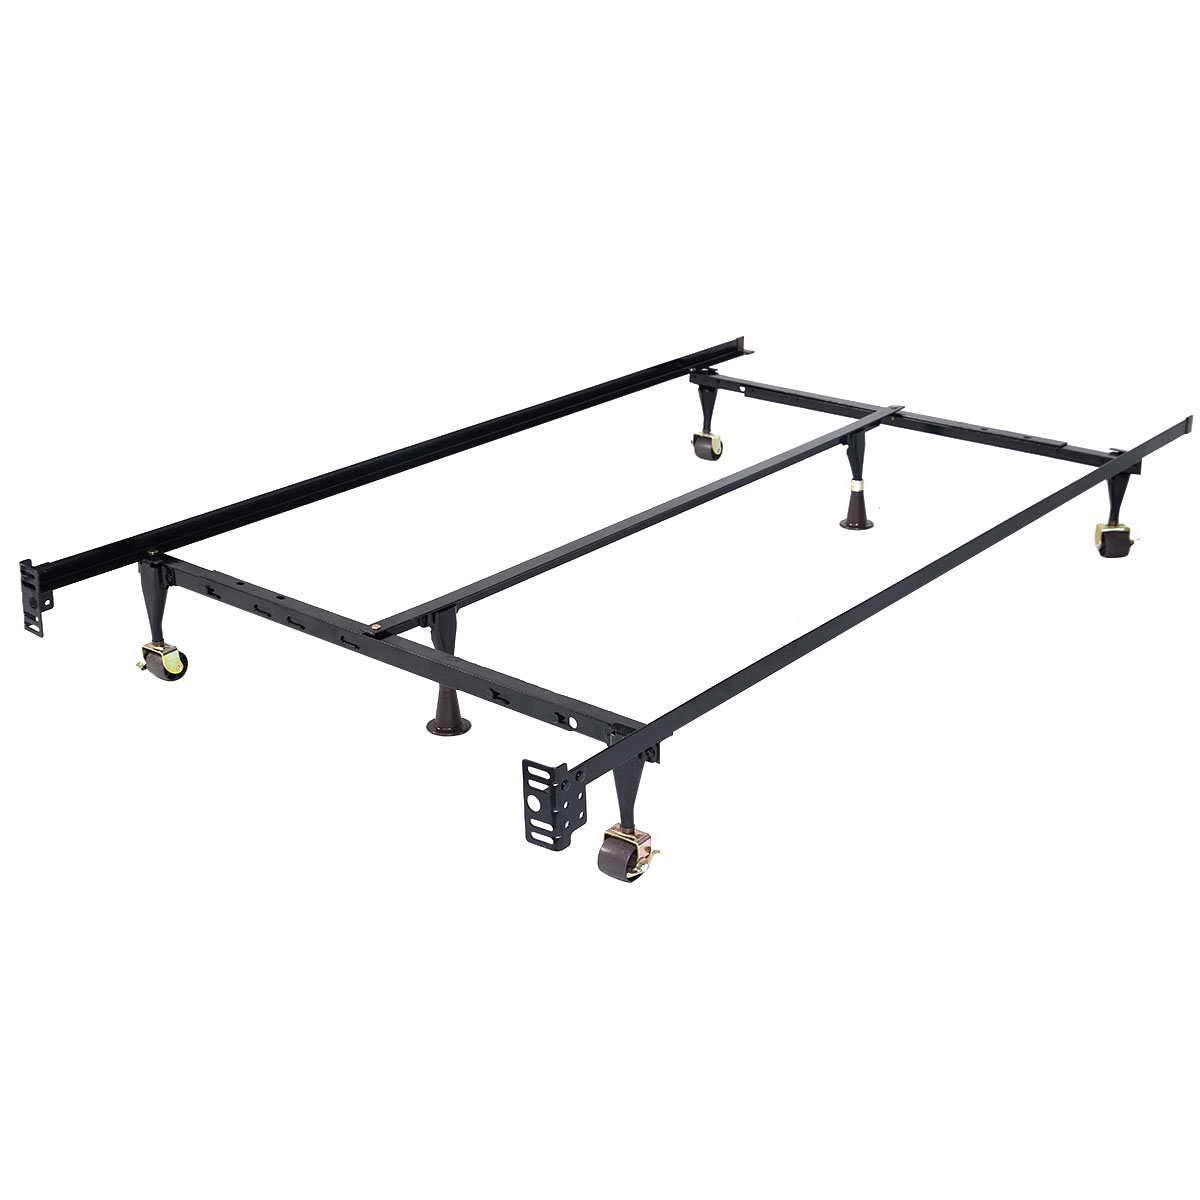 Toolsempire Heavy Duty Size-Adjustable Metal Bed Frame with Center Support and Rug Rollers,Low Profile Bed Frame Adjustable Width Fits Twin/Full/Queen, Black